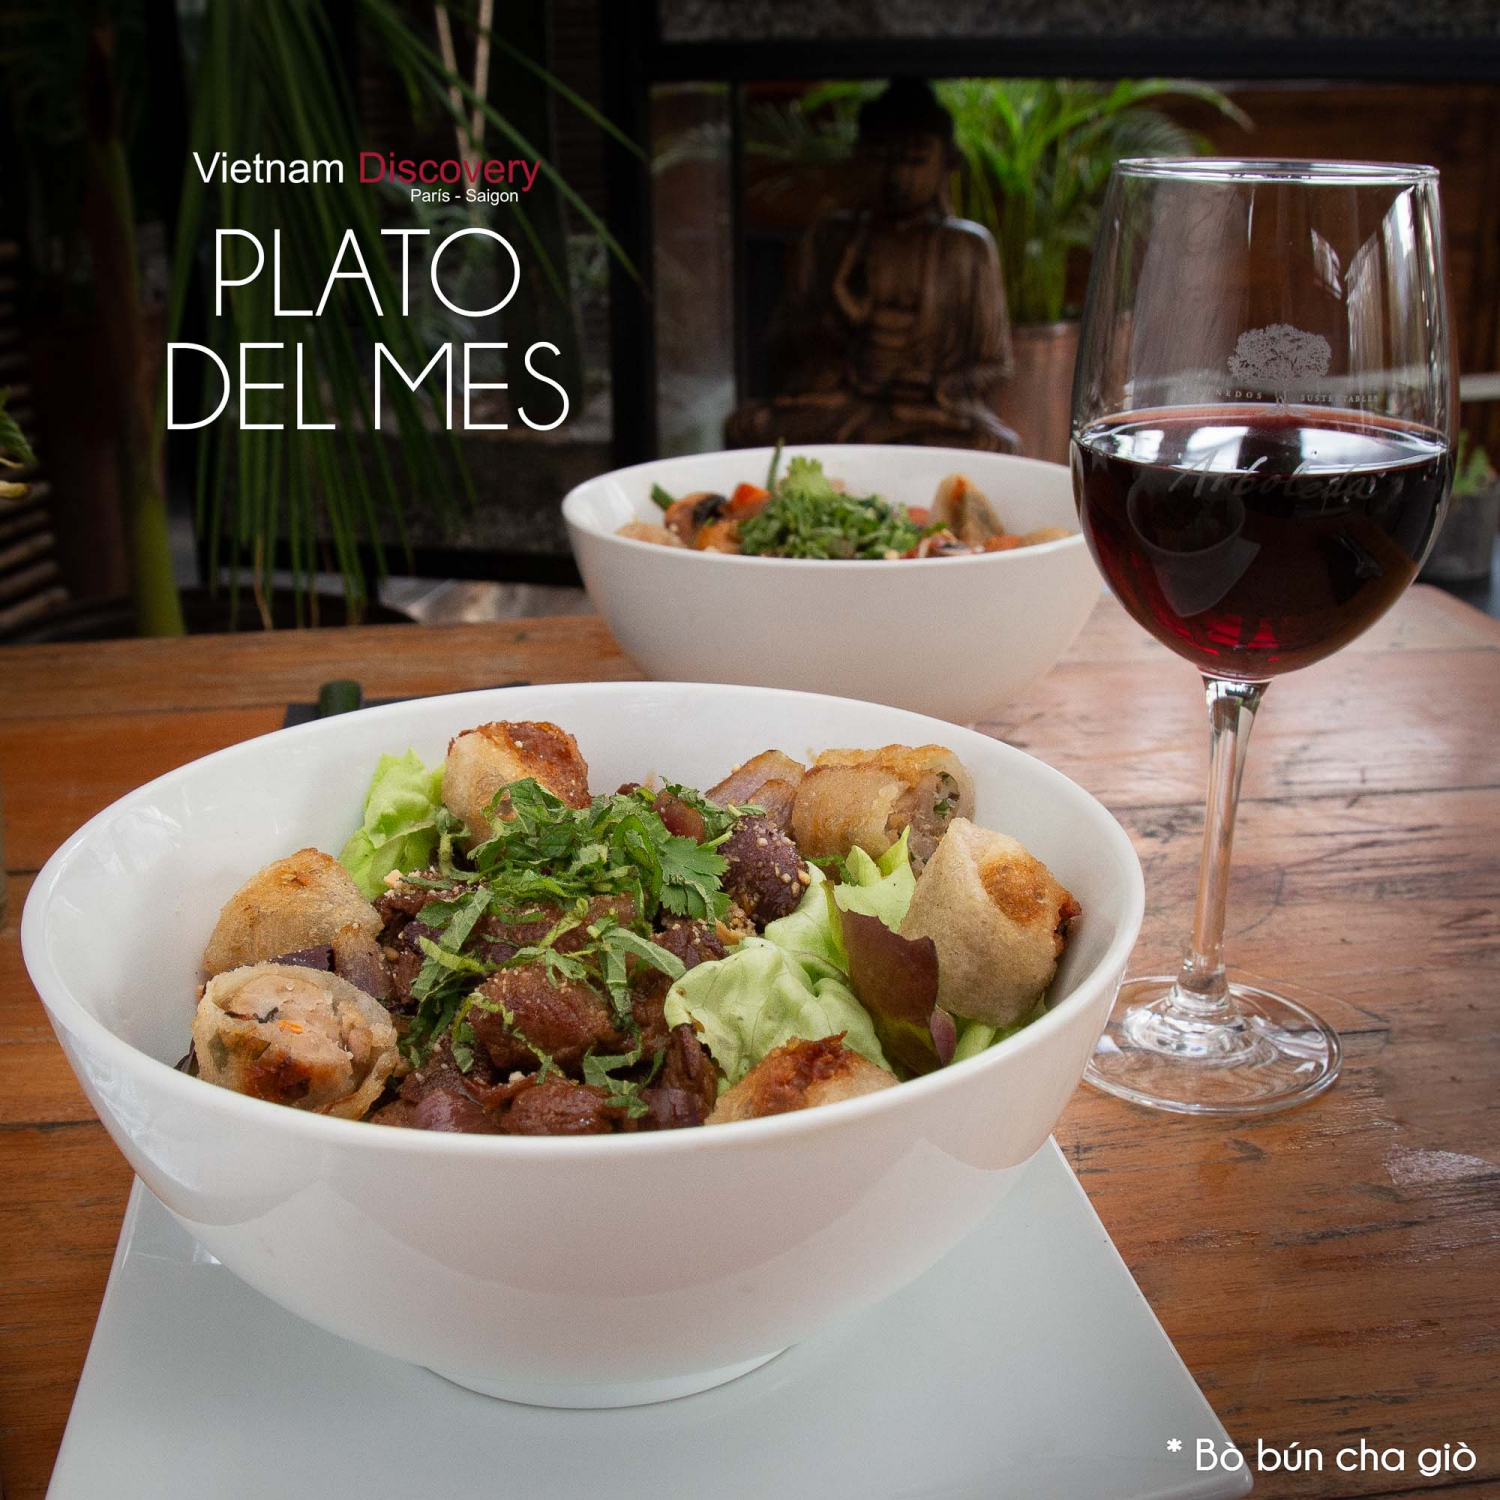 Dish of the Month - Vietnam Discovery